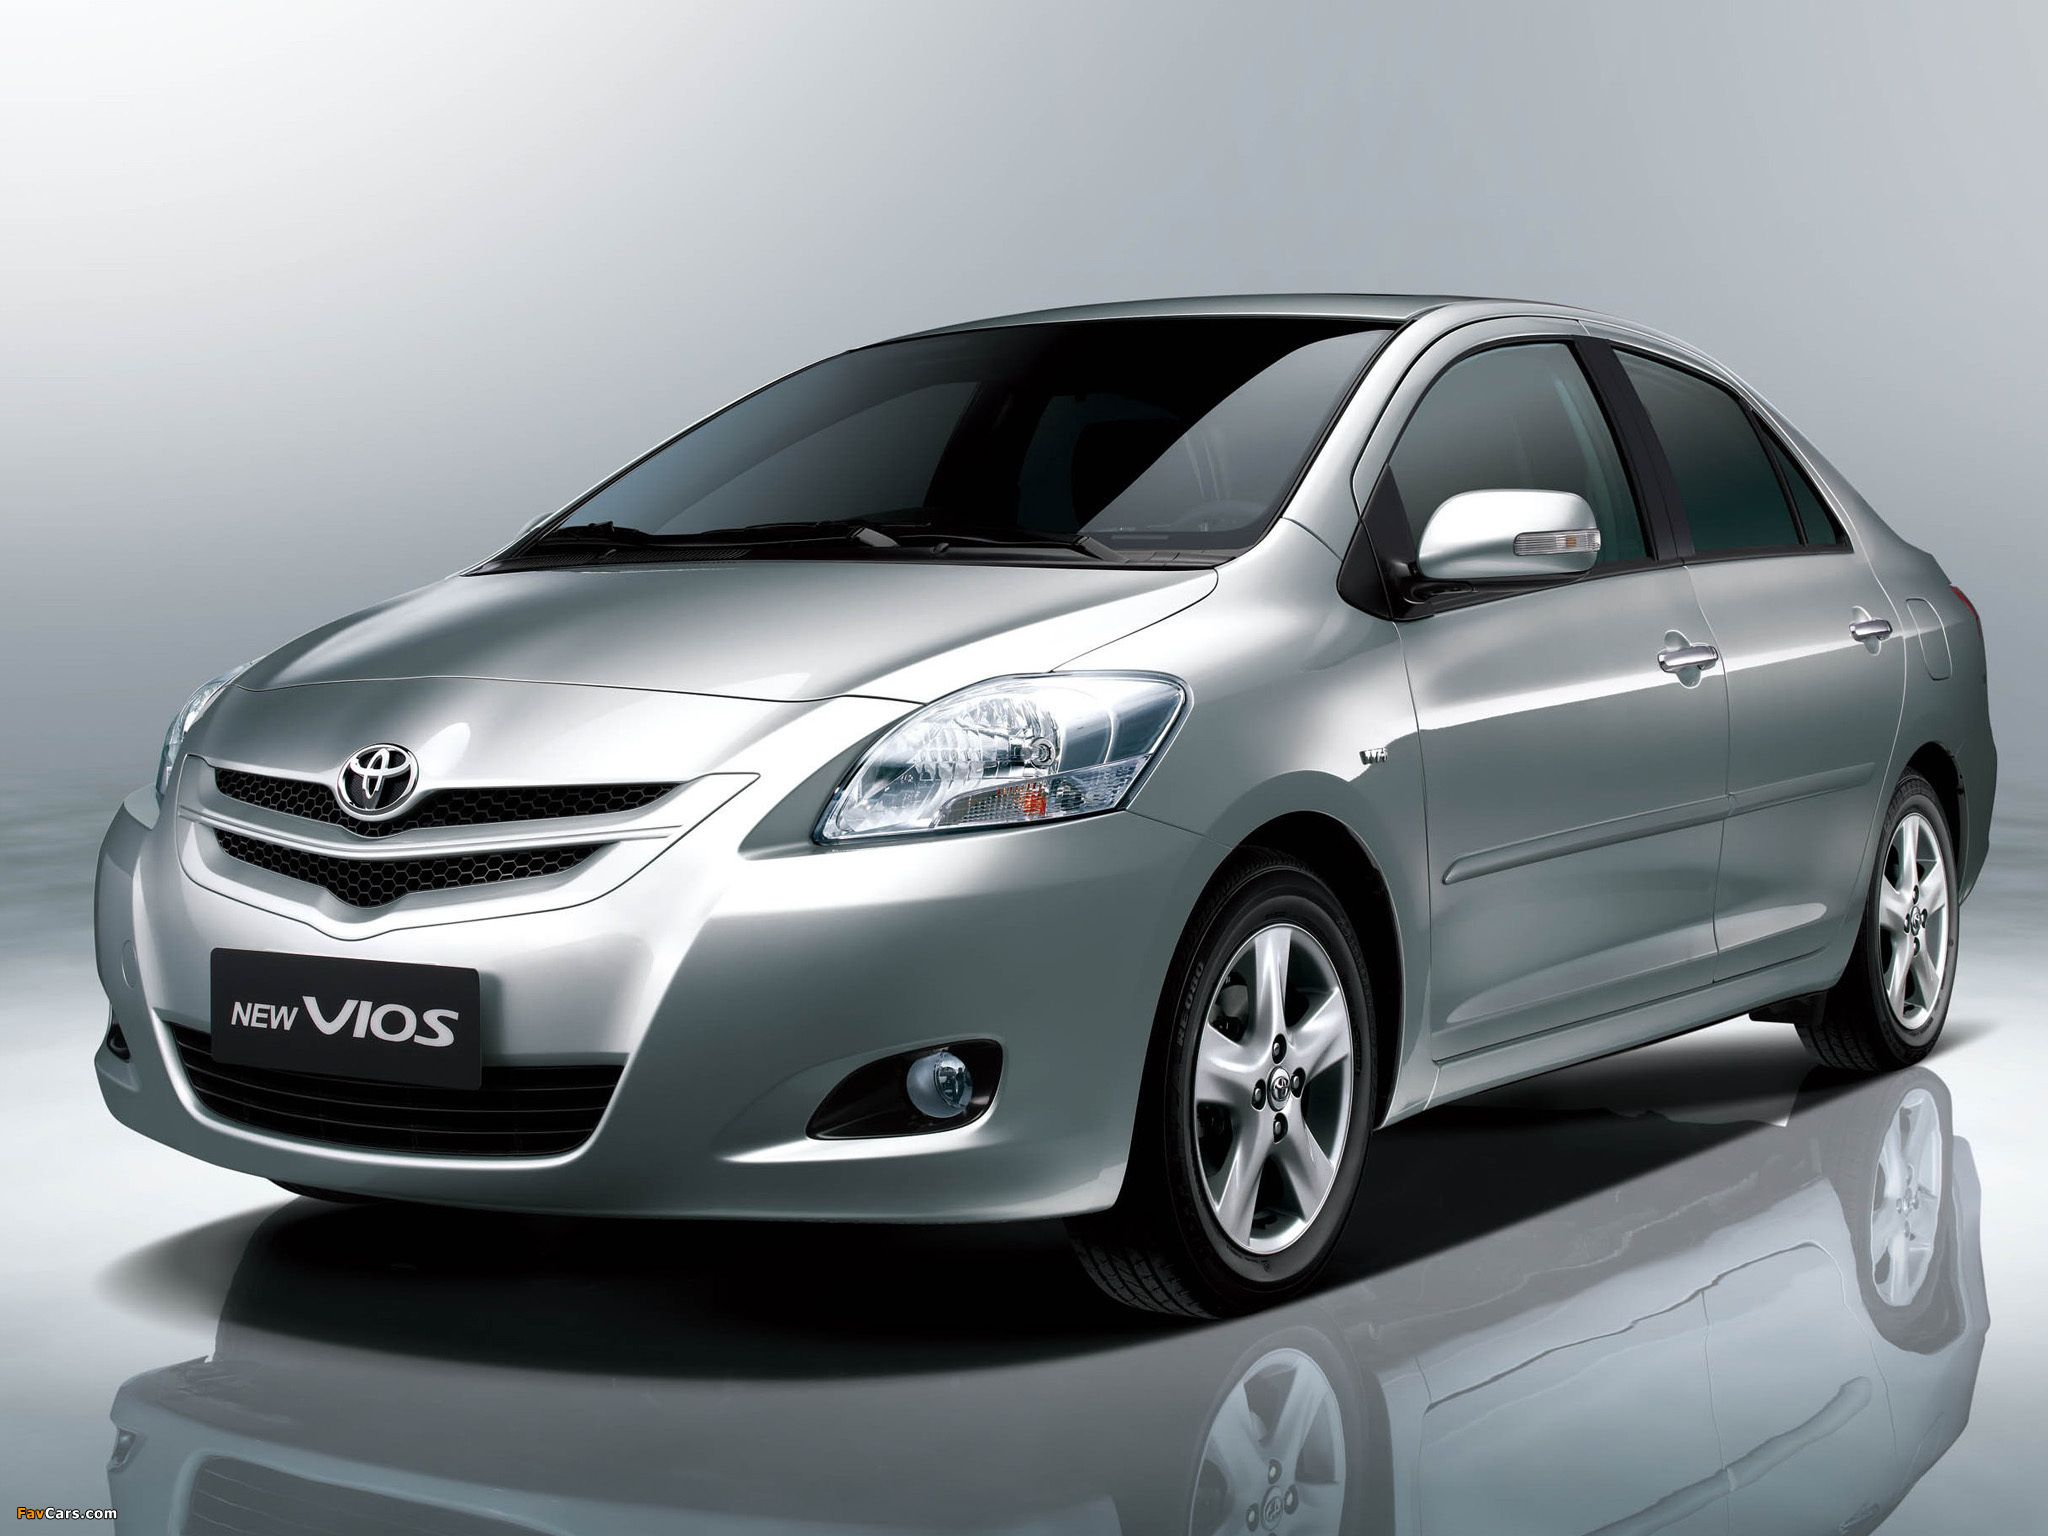 Toyota vios vietnam car hire sedan air conditioning seat belt new model lastest bottled mineral water tissue outside inside cleanse baby seat upon